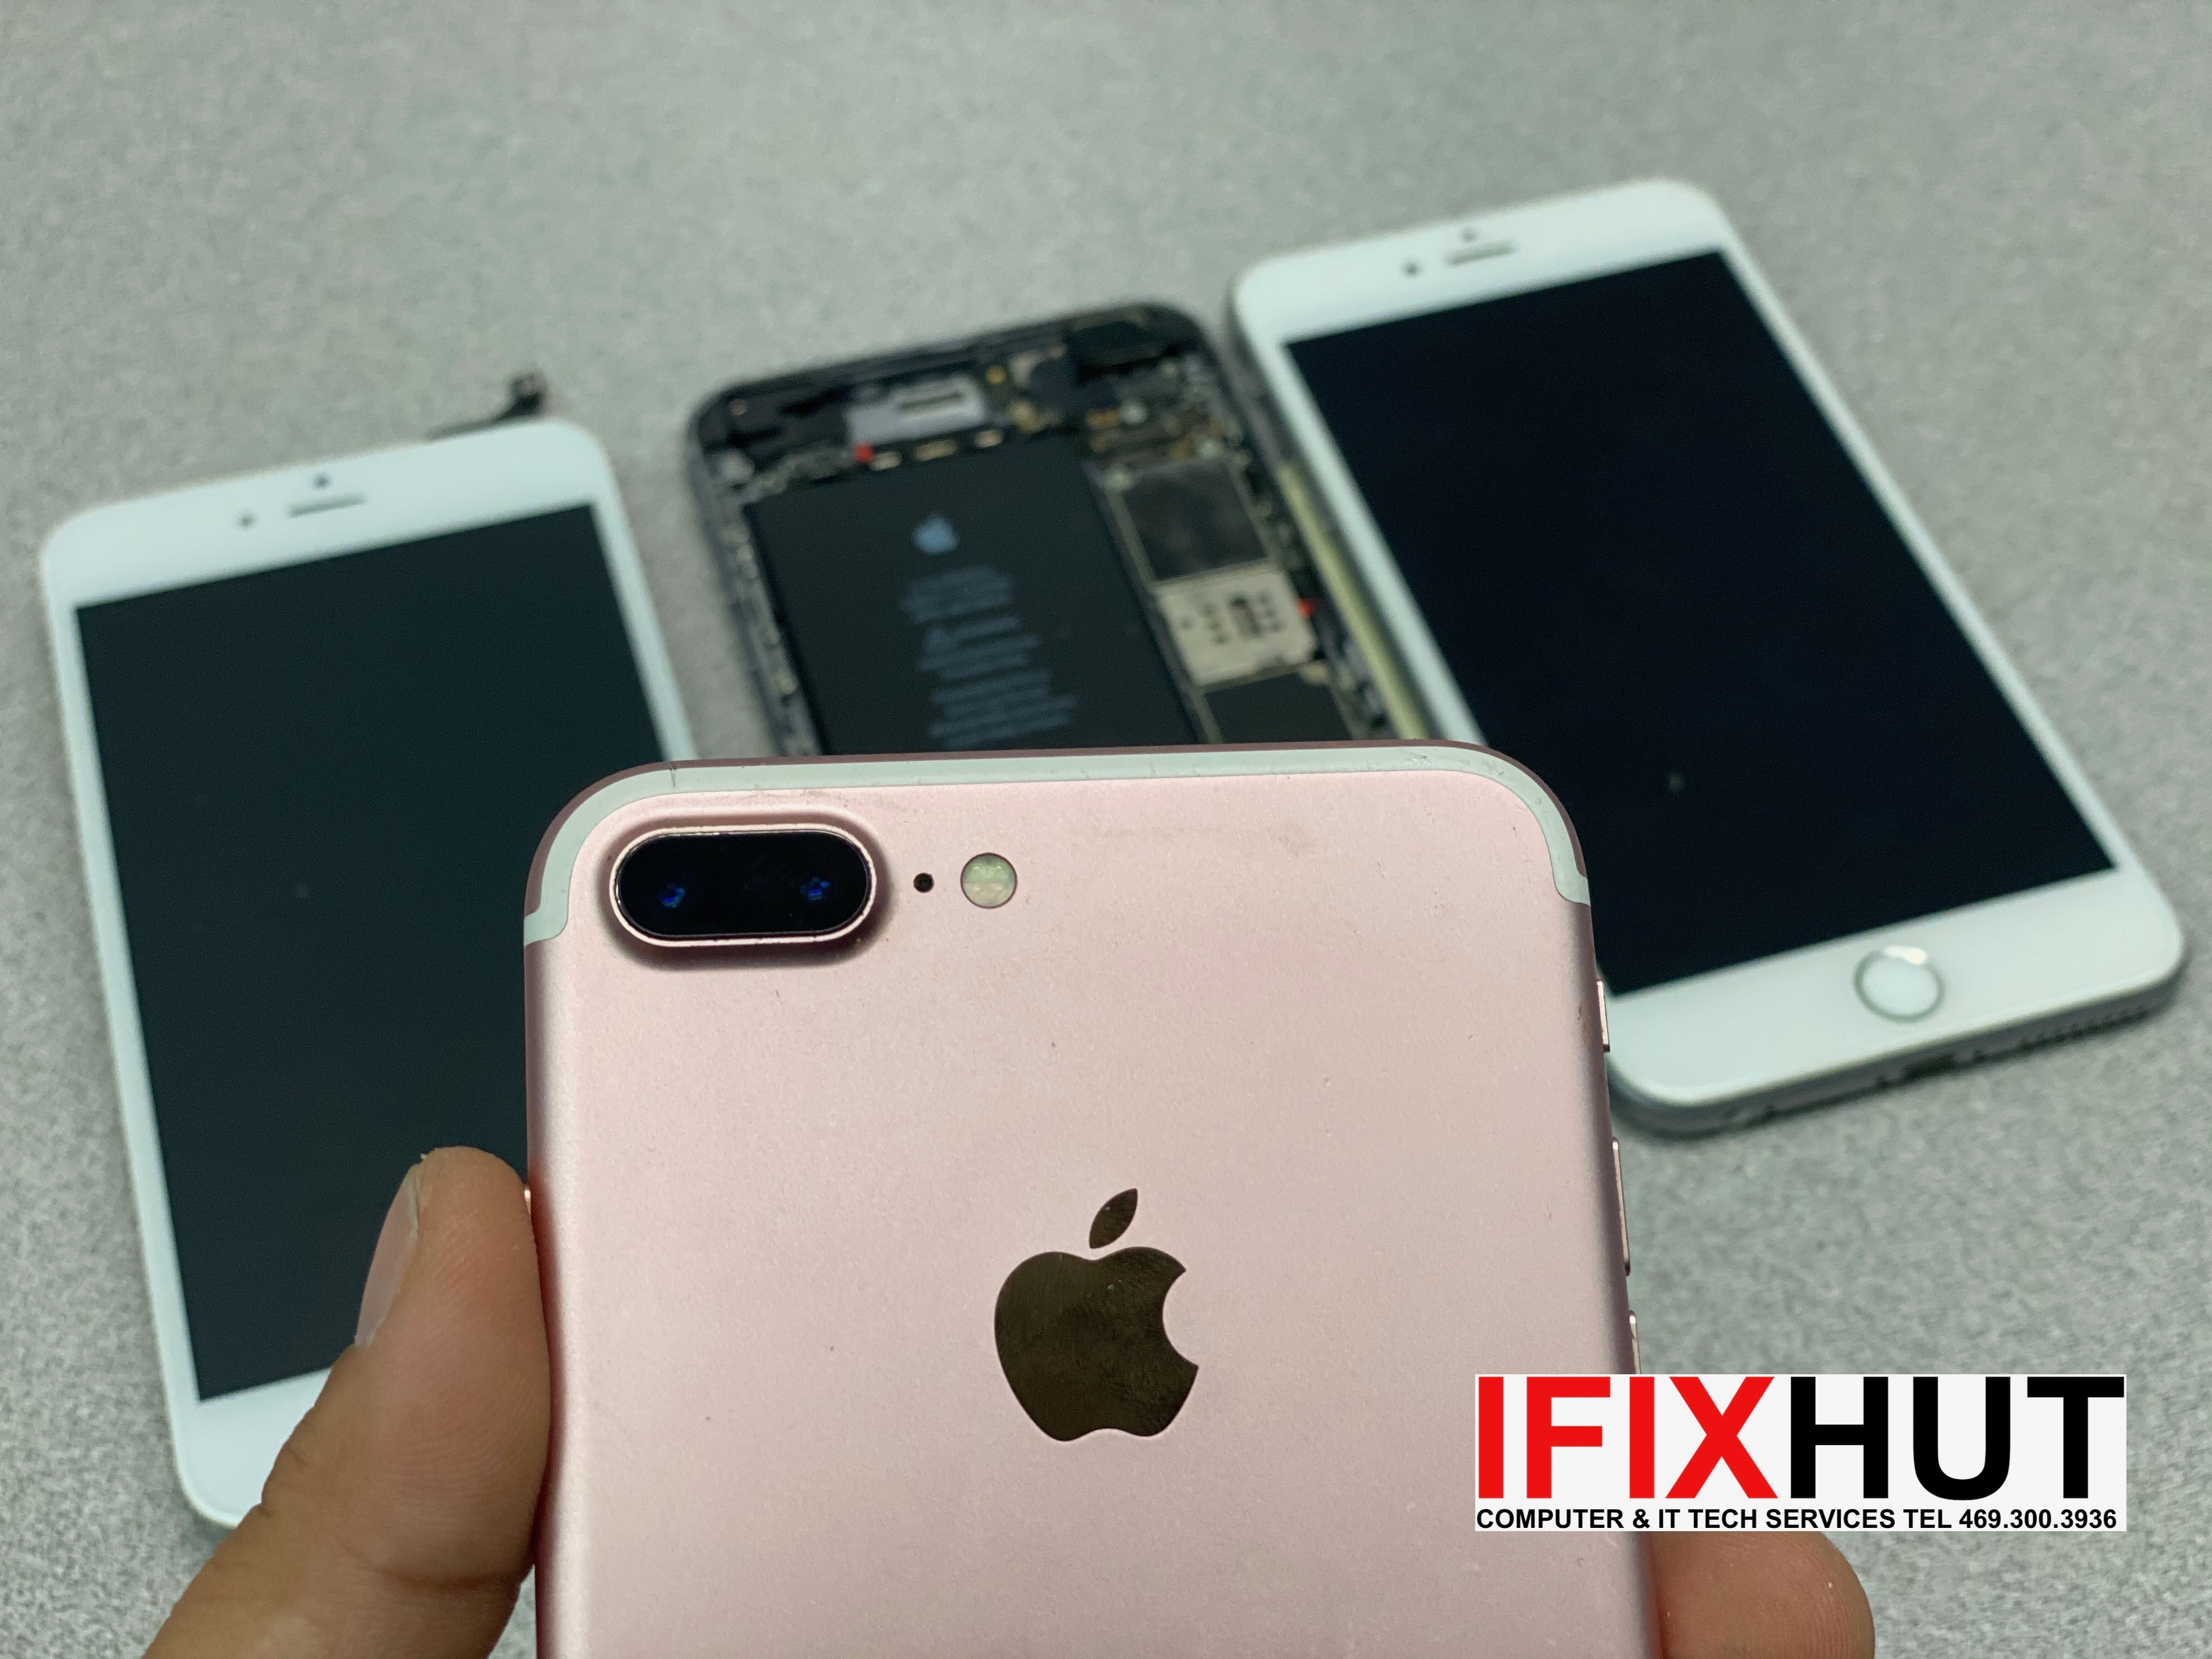 iPhone repair service McKinney Texas